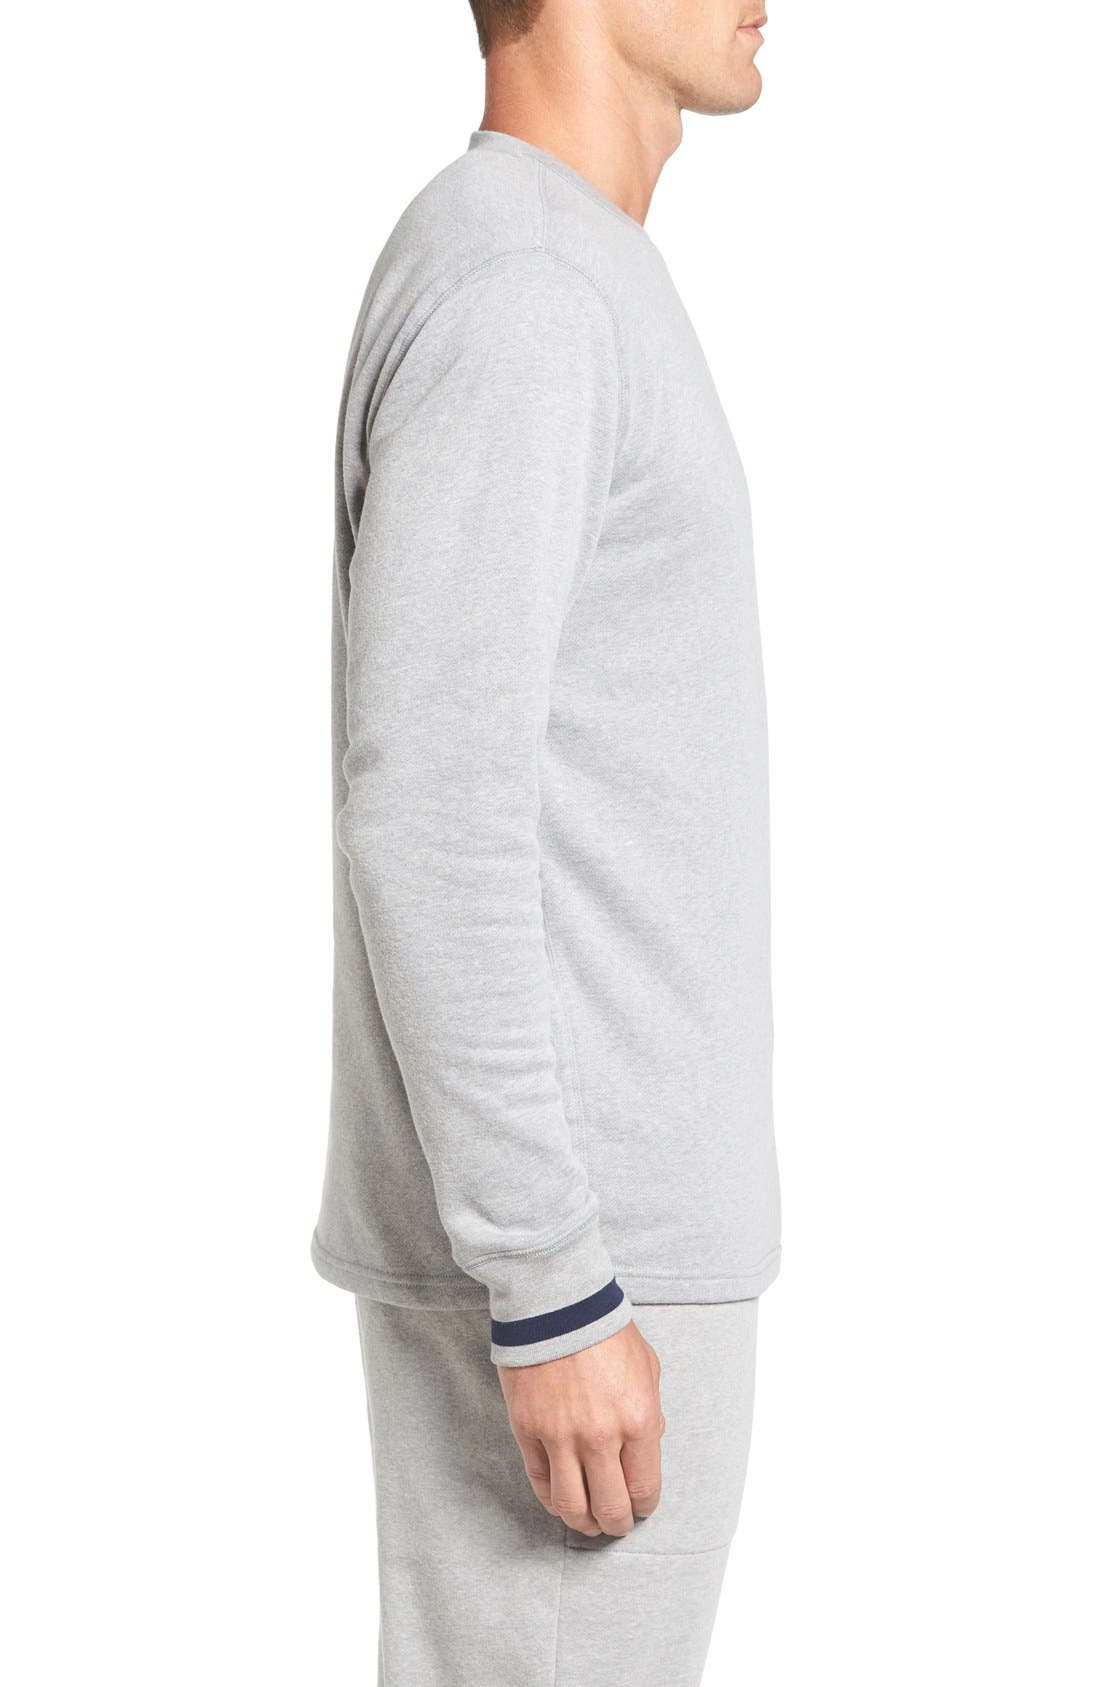 Brushed Jersey Cotton Blend Crewneck Sweatshirt,                             Alternate thumbnail 3, color,                             Andover Heather Grey